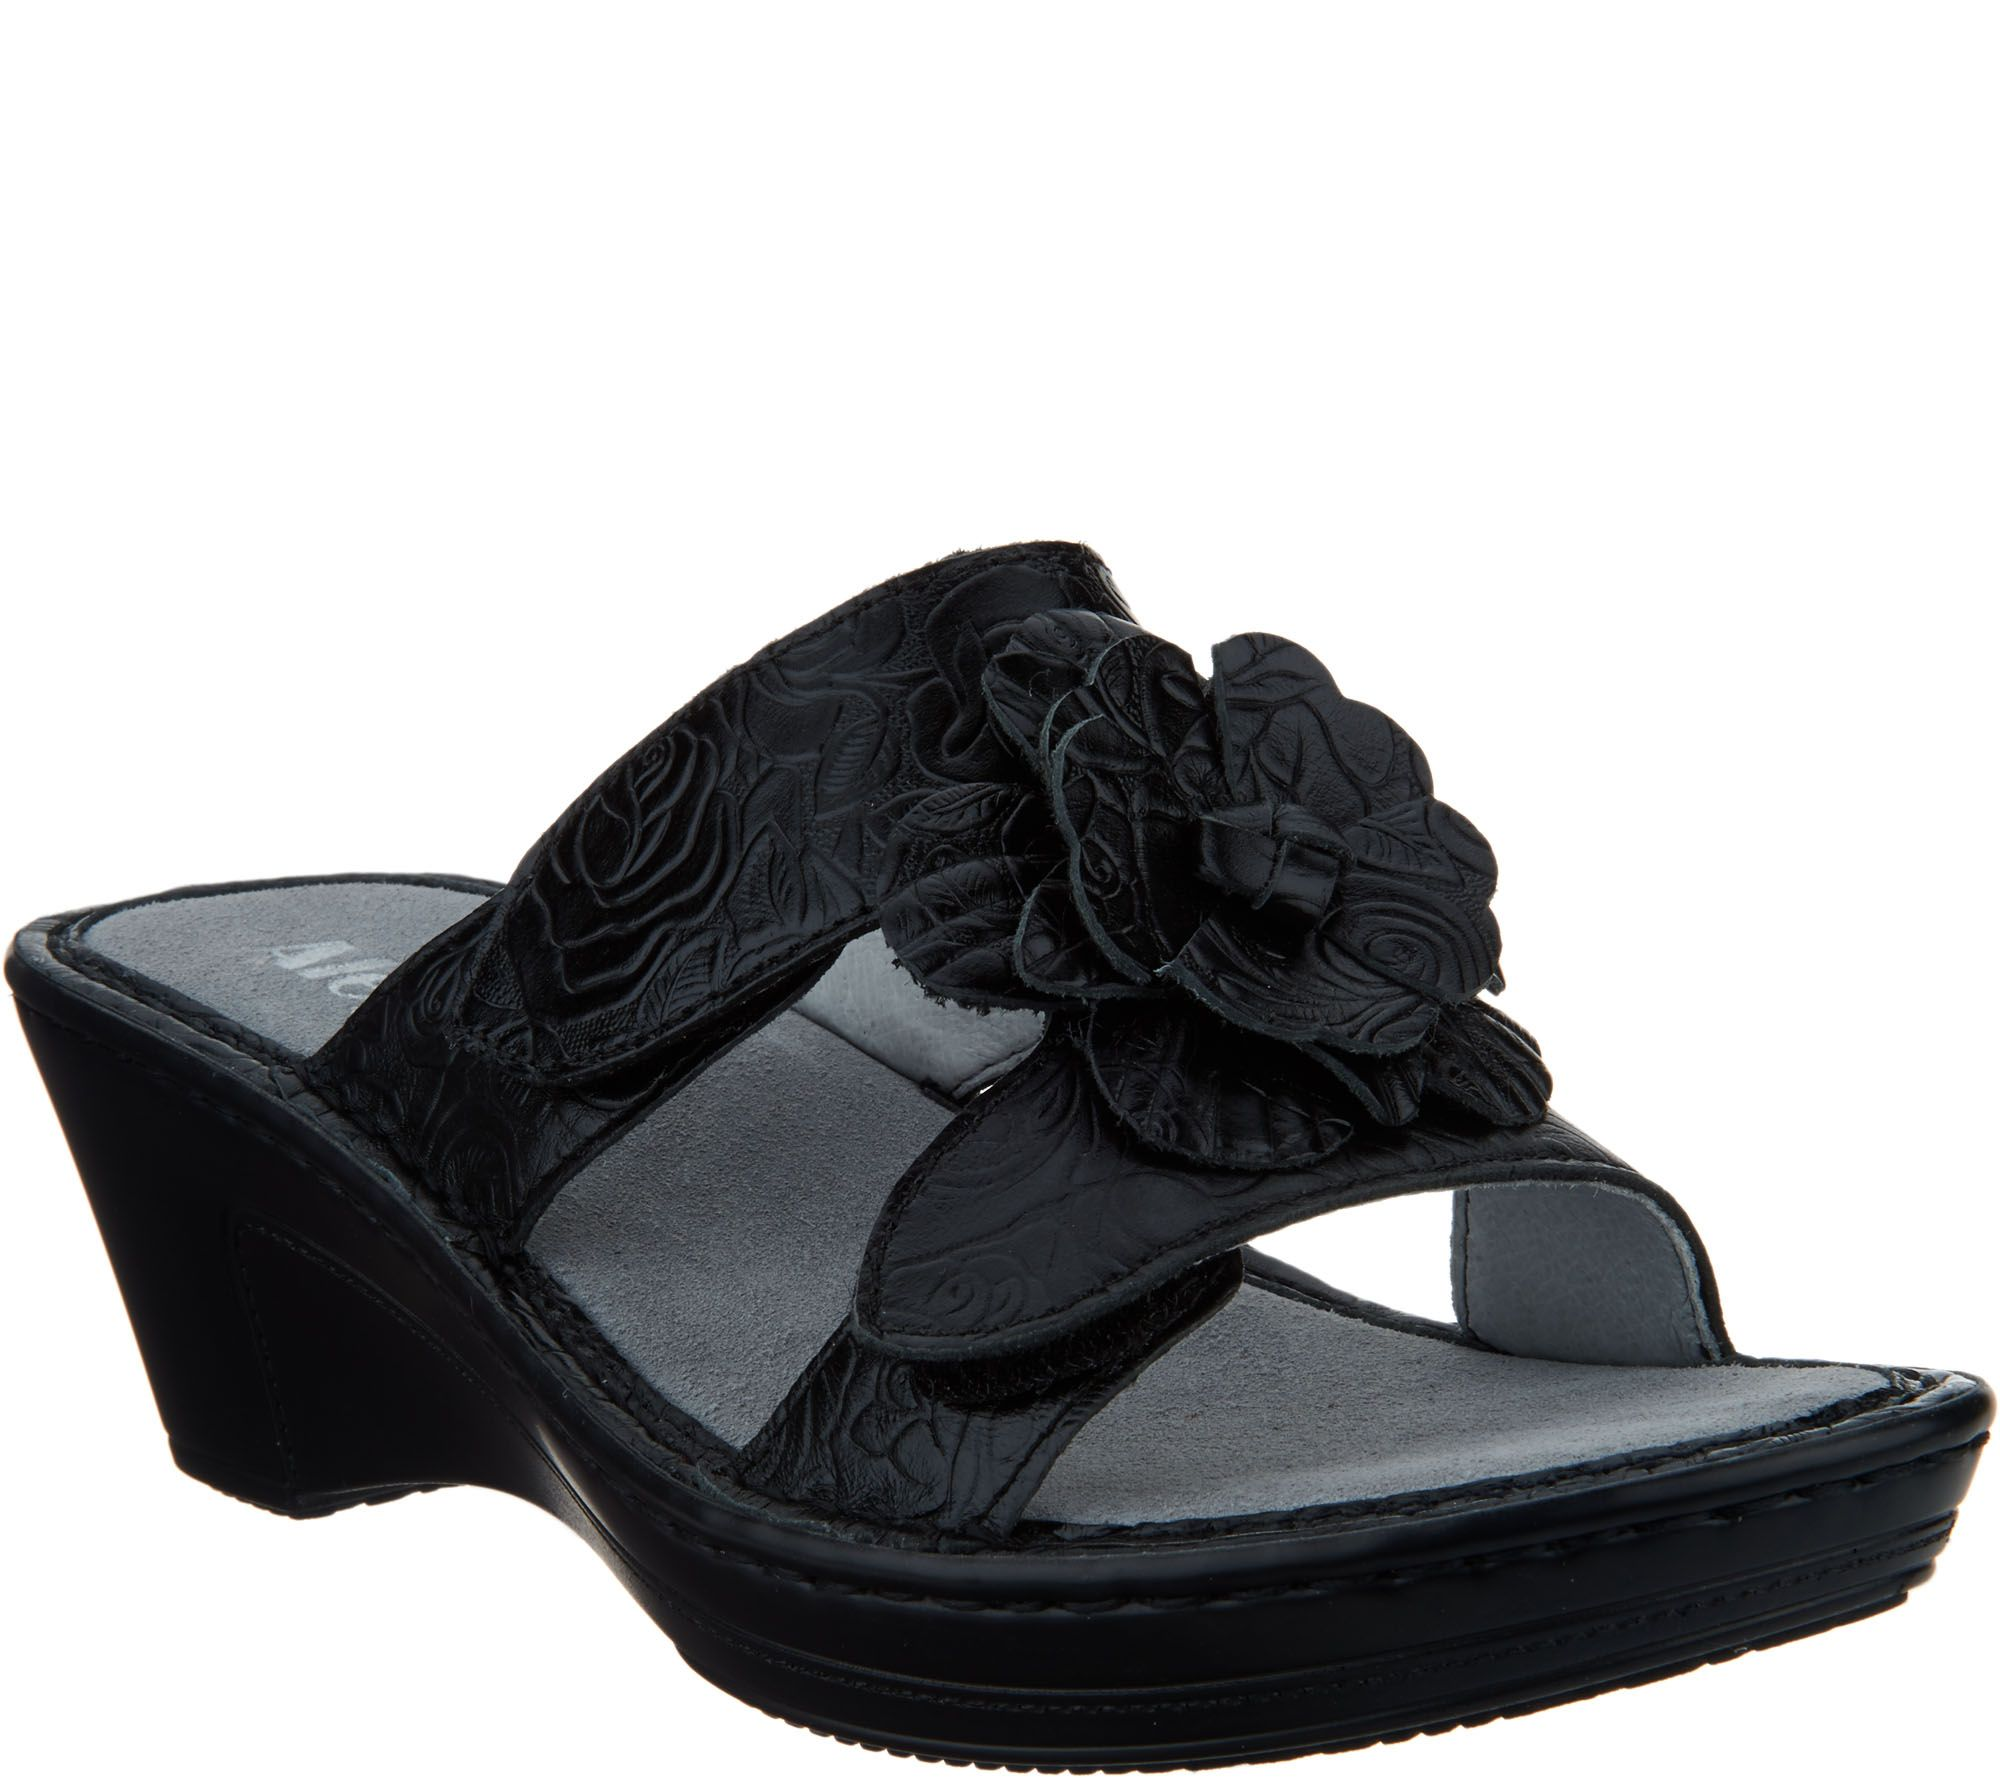 56e2f0e4f880 Alegria Leather Wedge Sandals w Flower Detail - Lana - Page 1 — QVC.com